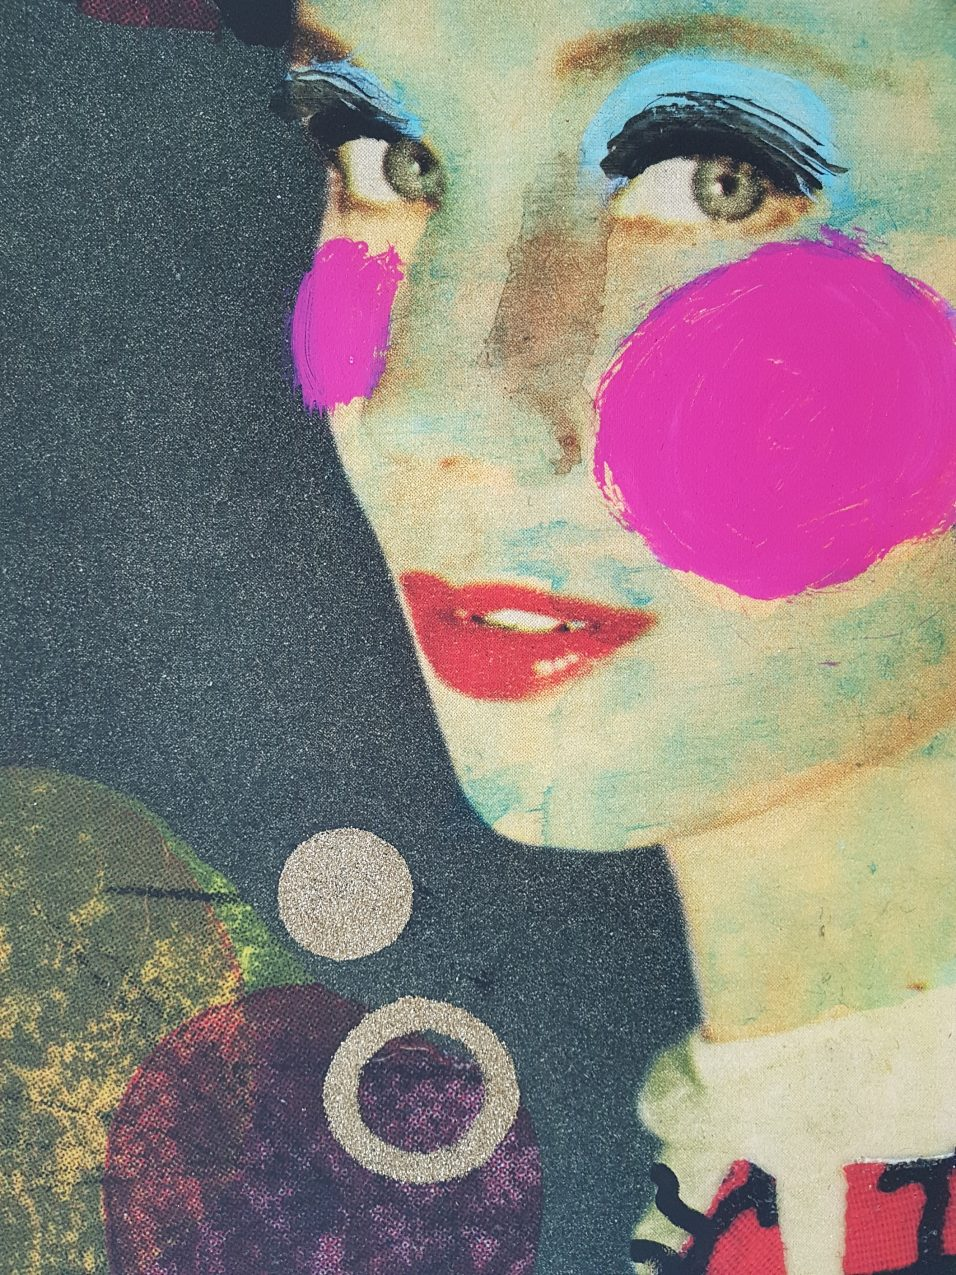 Noor Huige - I'm with the girls #1 detail 01